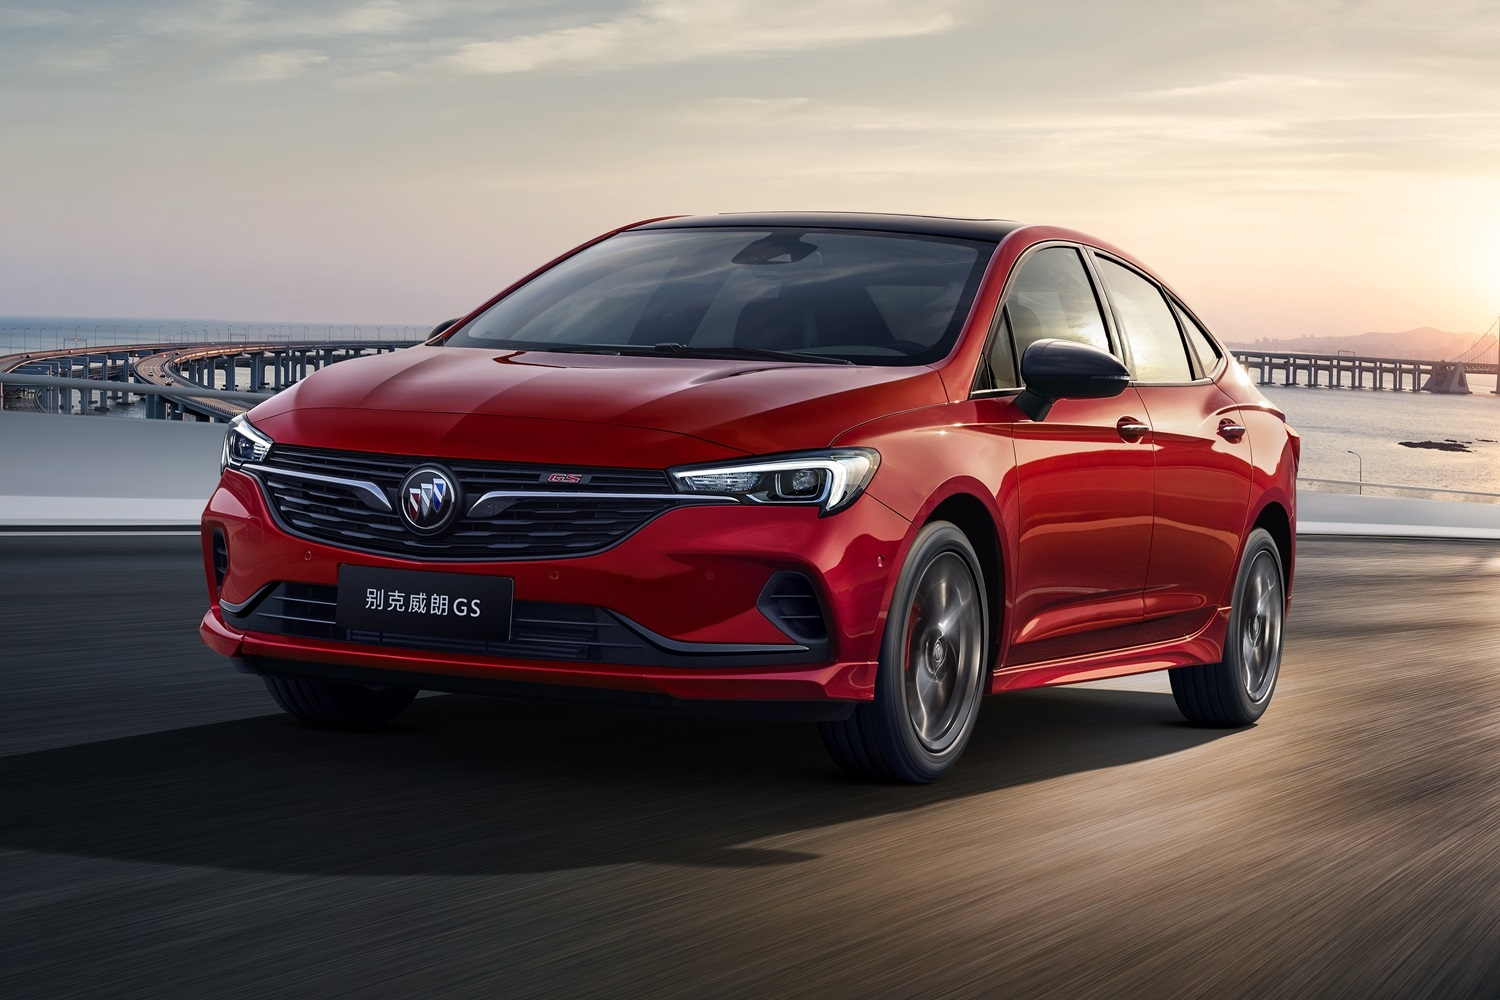 New 2021 Buick Verano Gs Launches In China | Gm Authority New 2021 Buick Verano Models, Lease, Engine Size